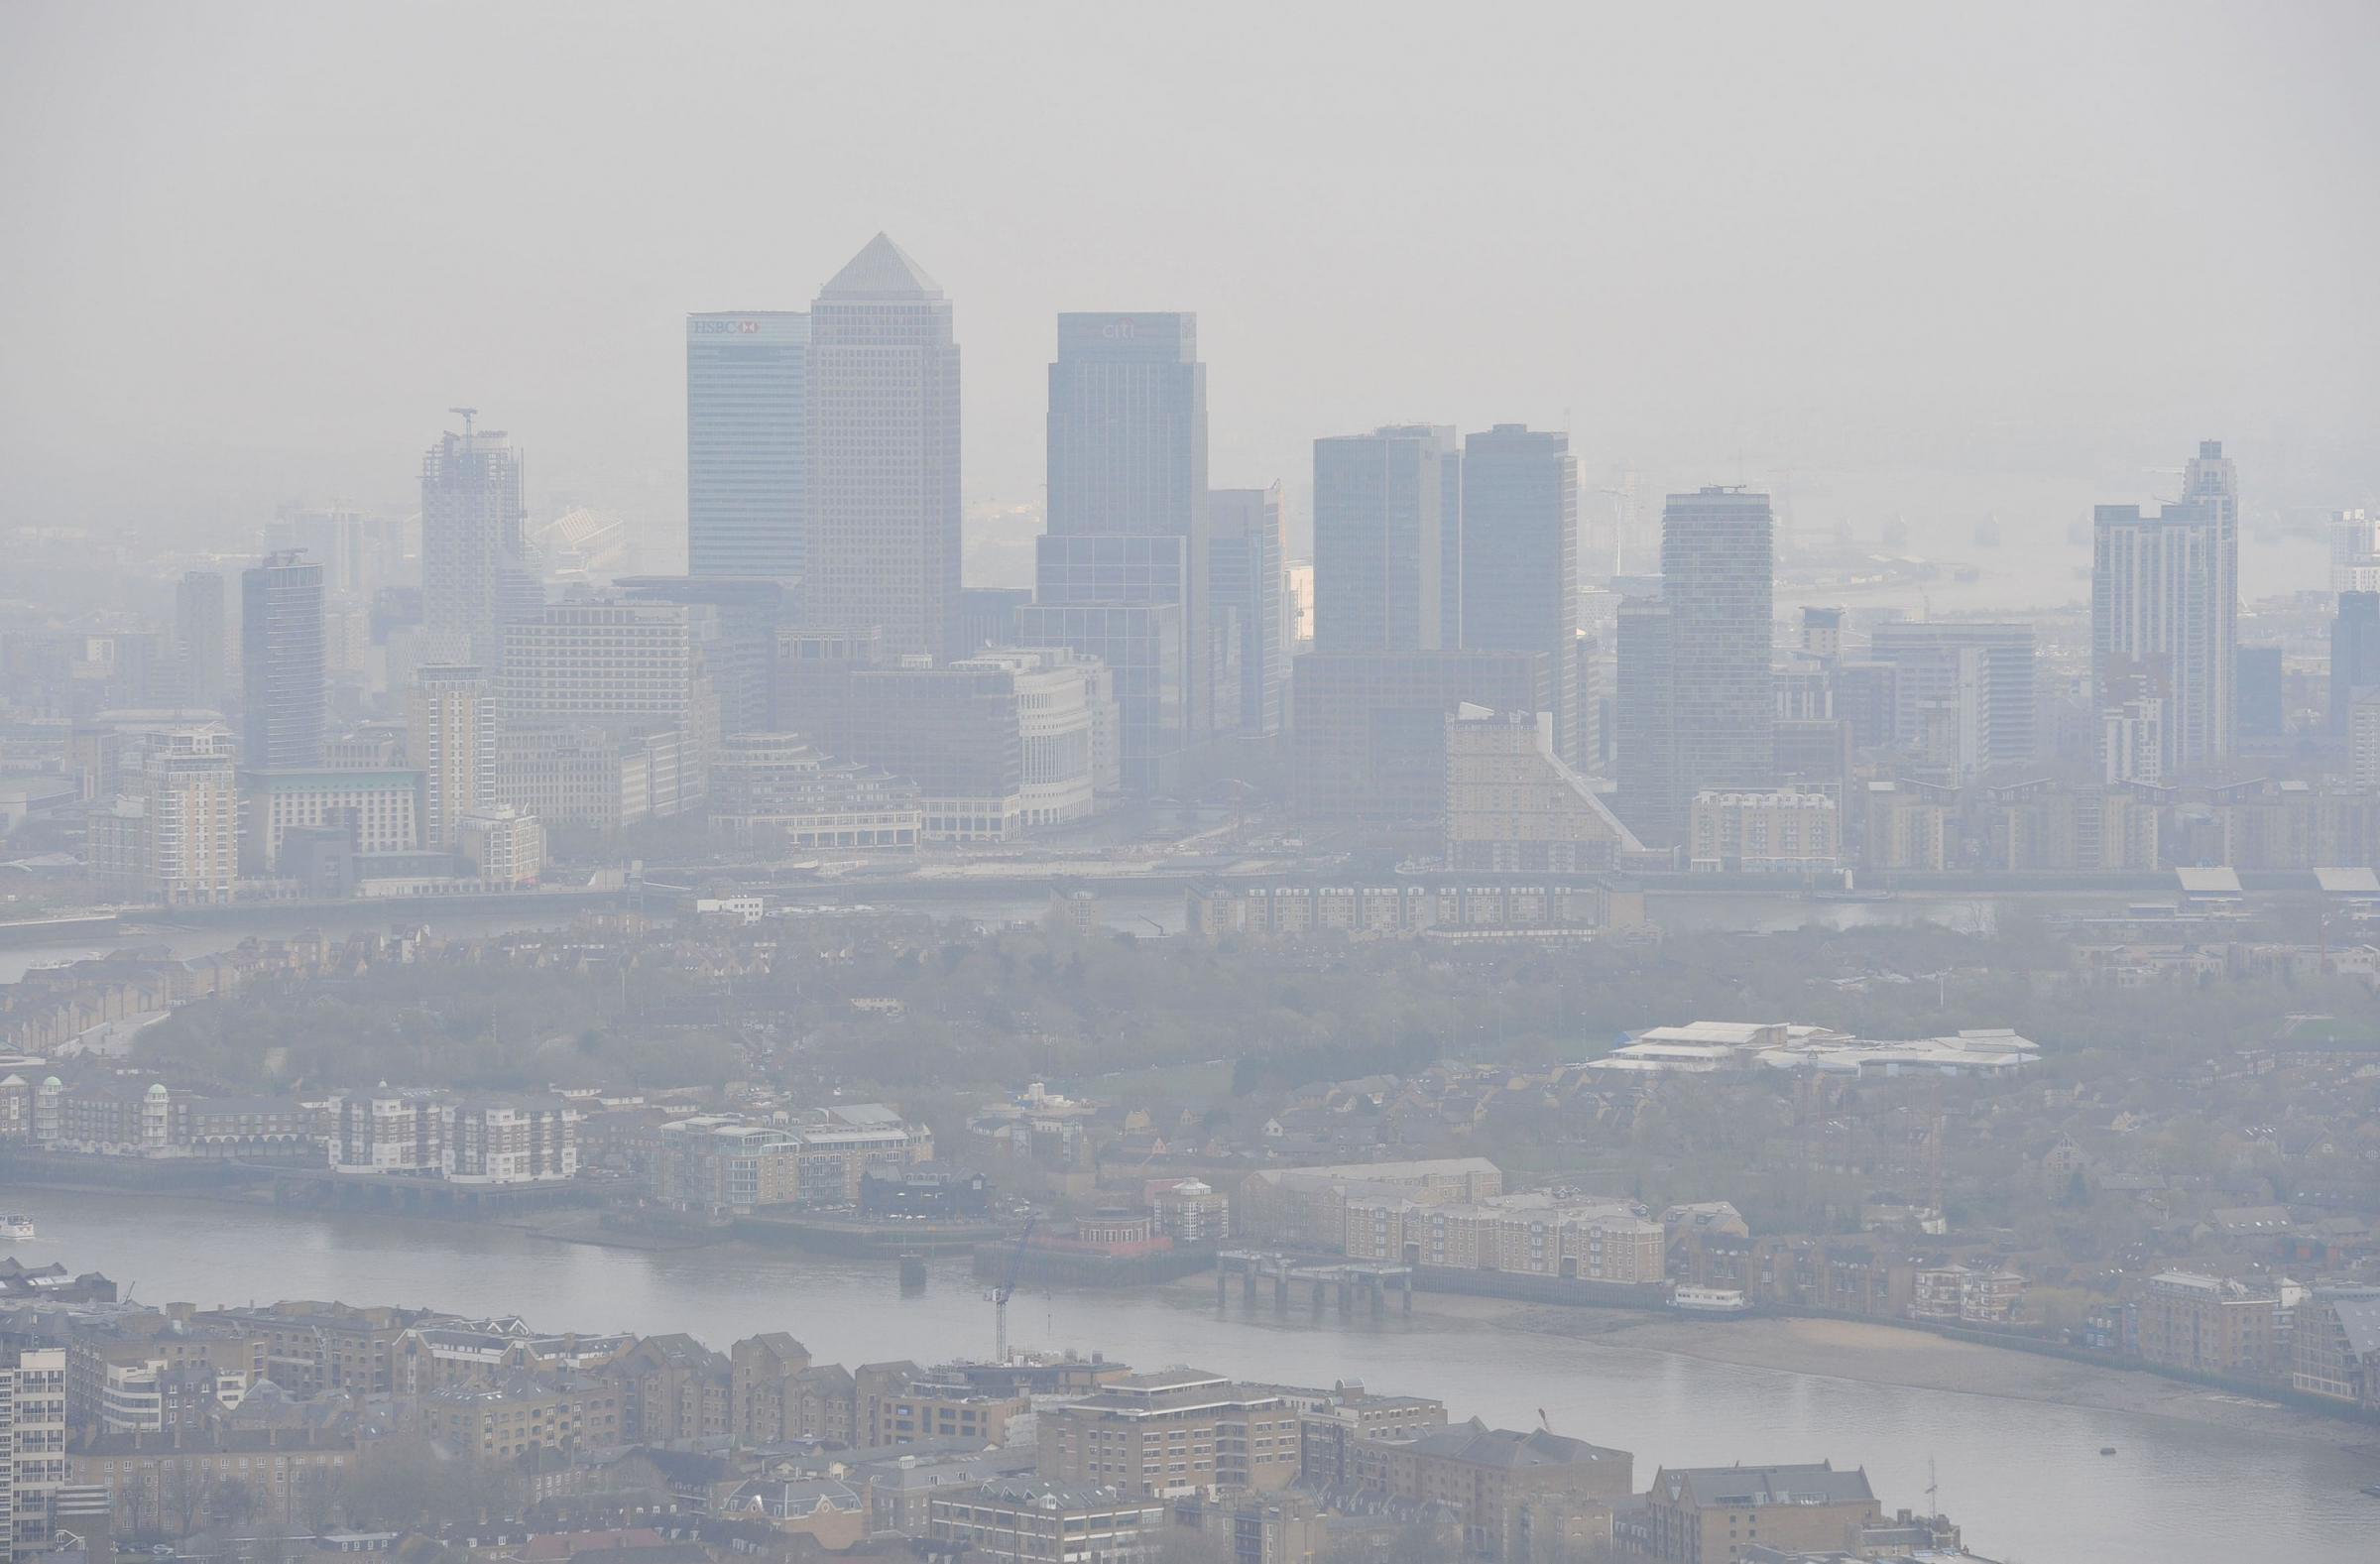 Air pollution may be linked to dementia